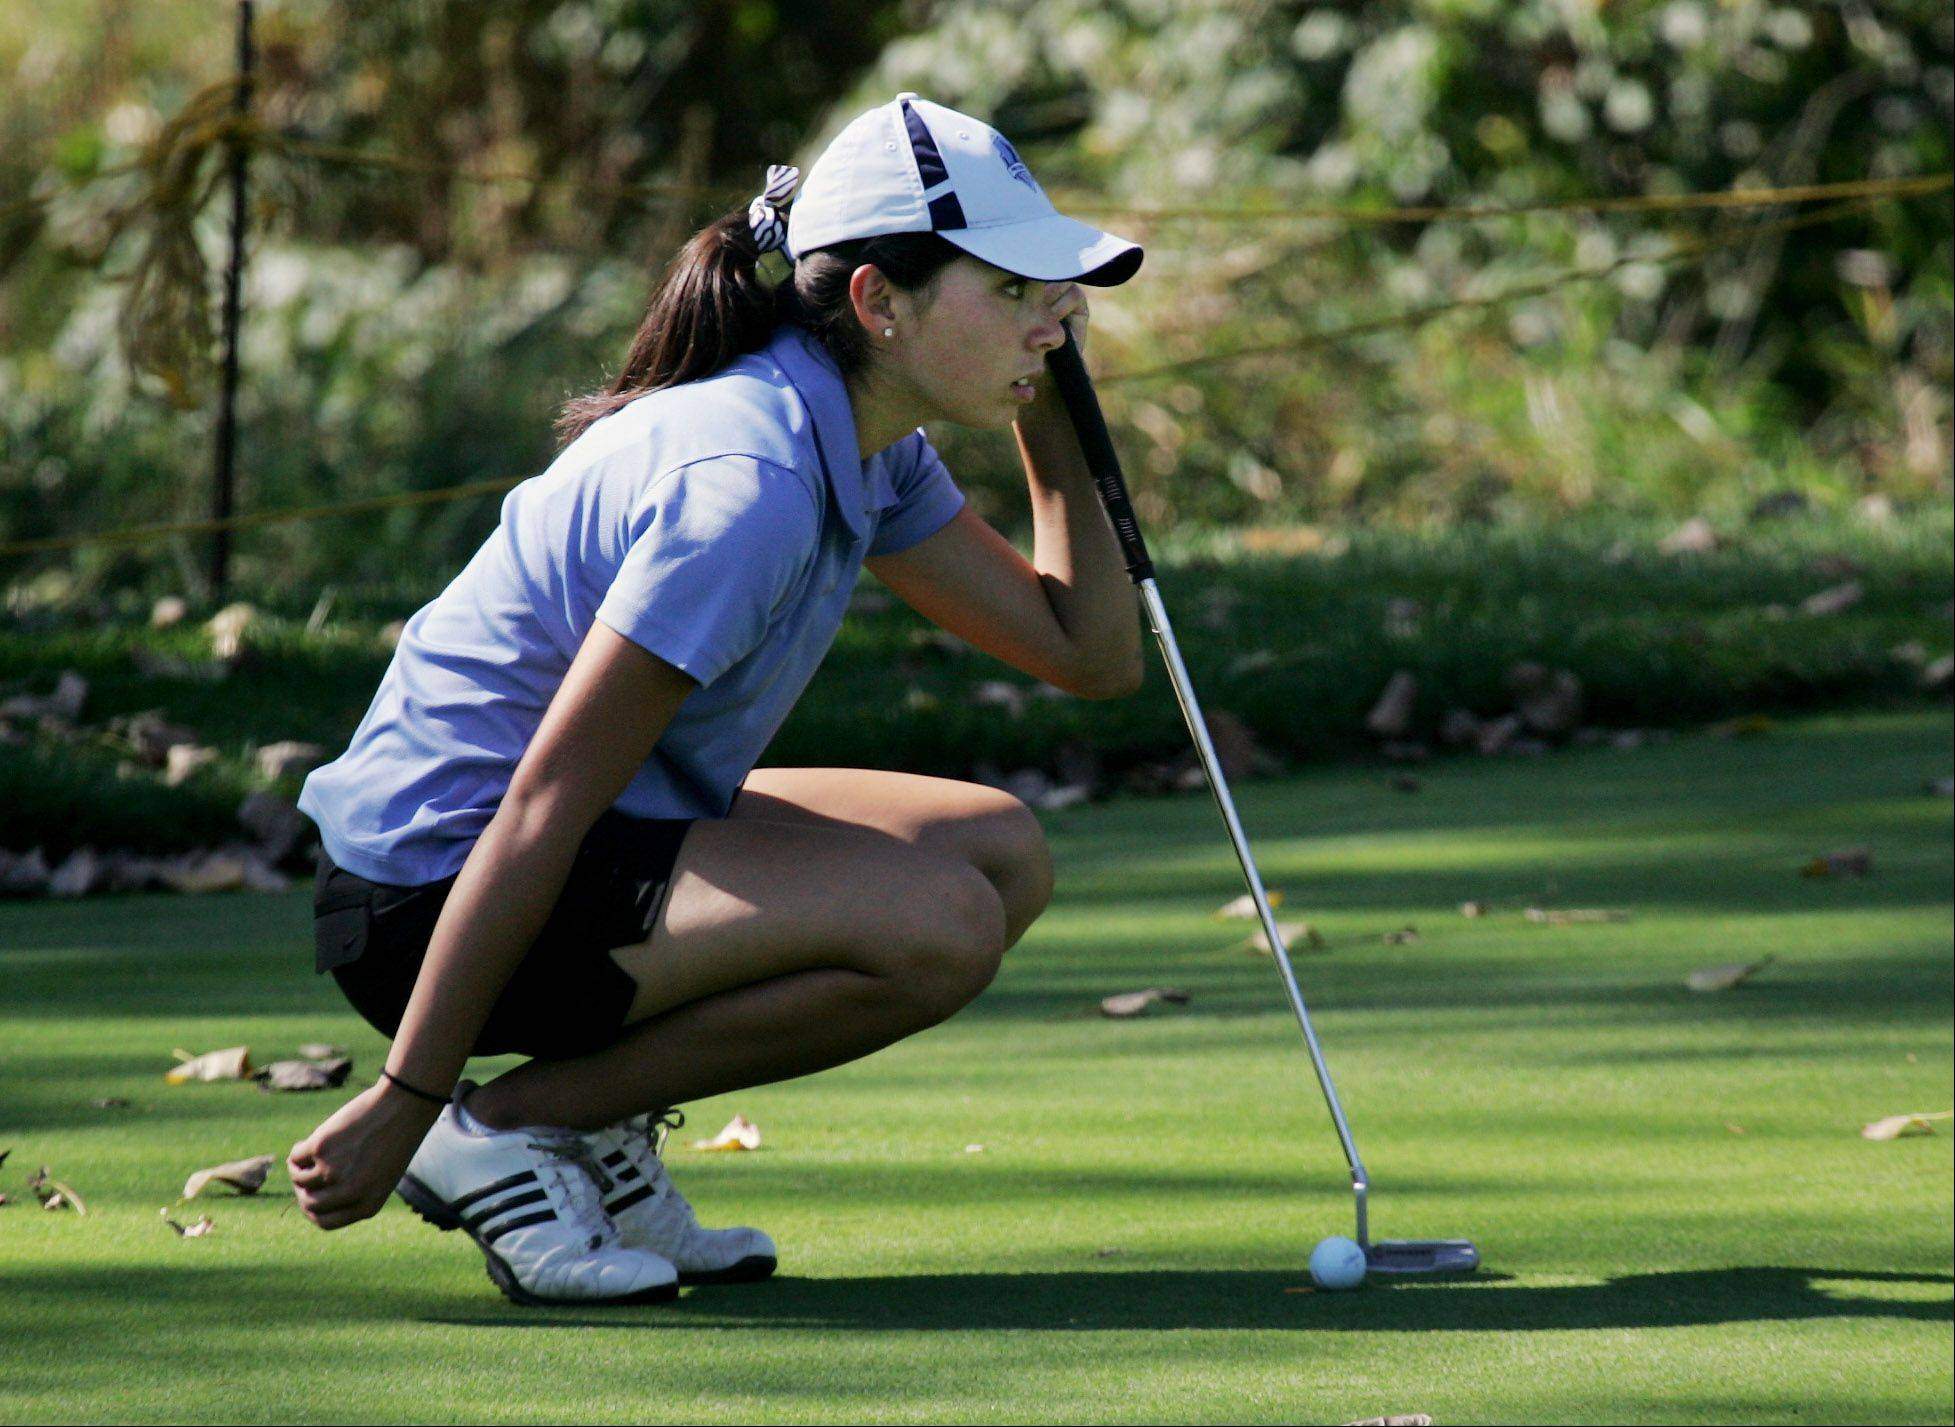 Prospect golfer Christine Garmoe lines up her putt on the tenth hole during the Class 2A girls golf sectional Monday at Buffalo Grove Golf Club.